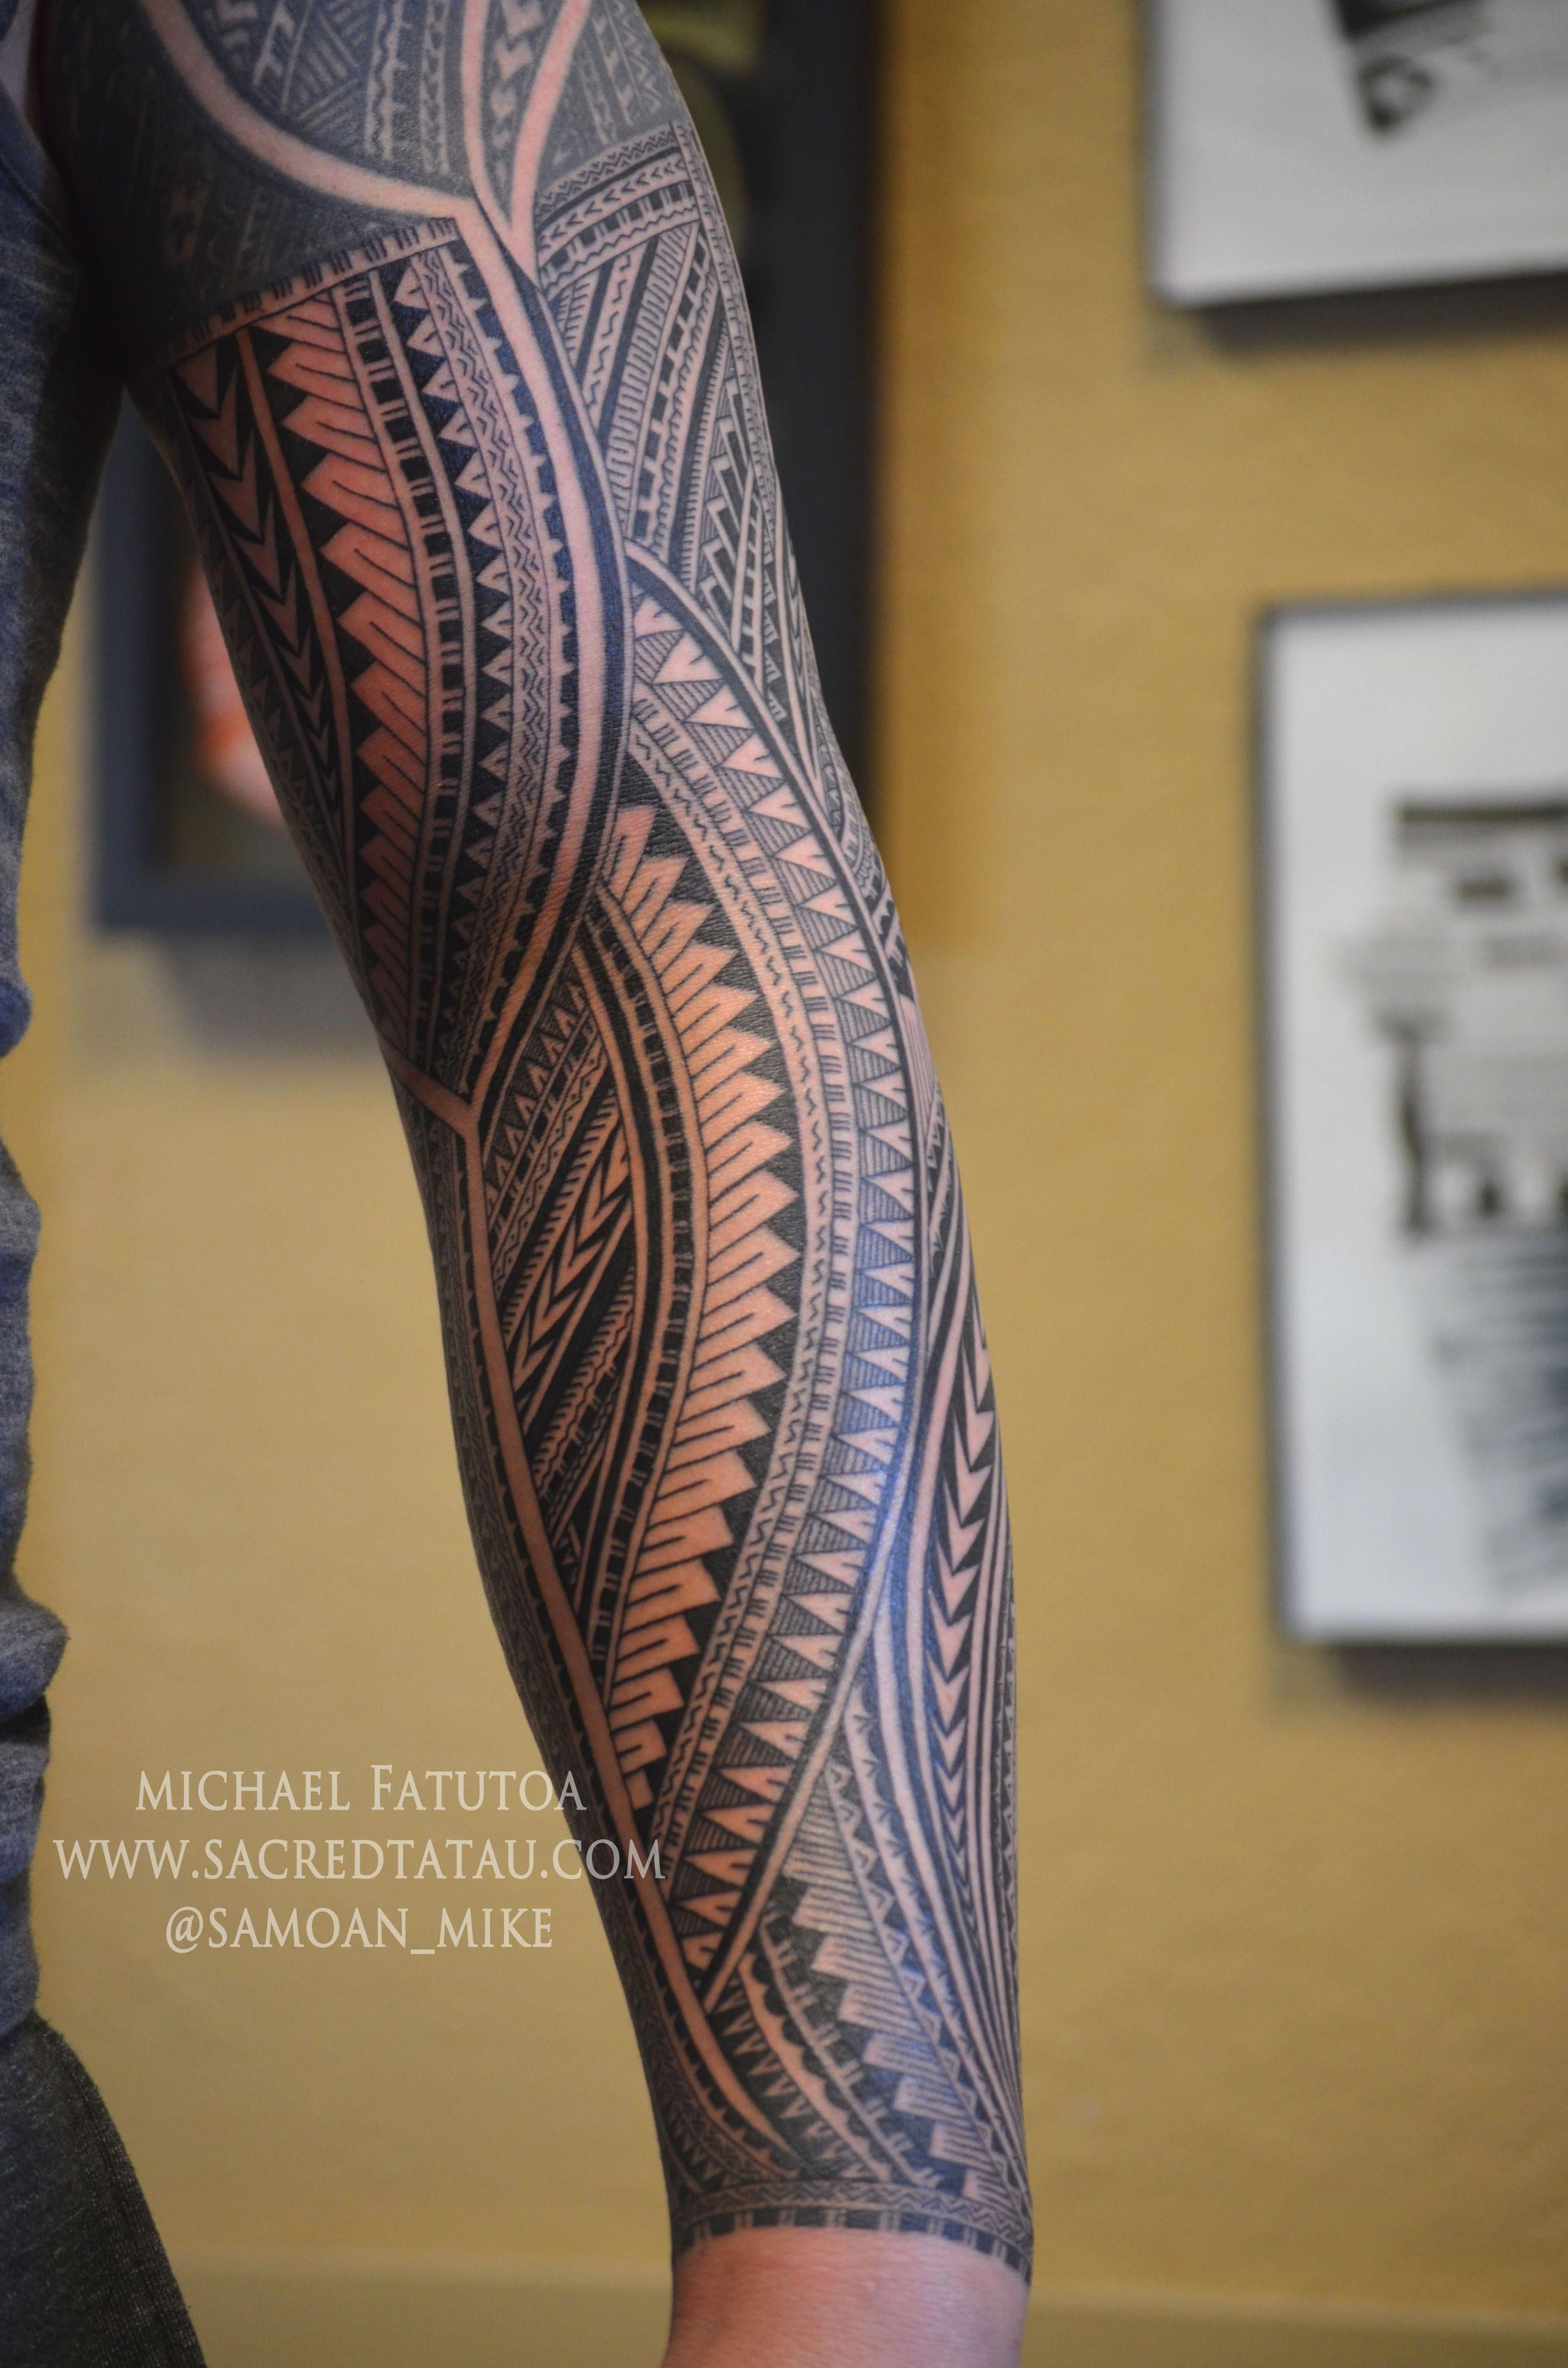 more so on the structure of the  samoan arm sleeve by michael fatutoa @samoan_mike